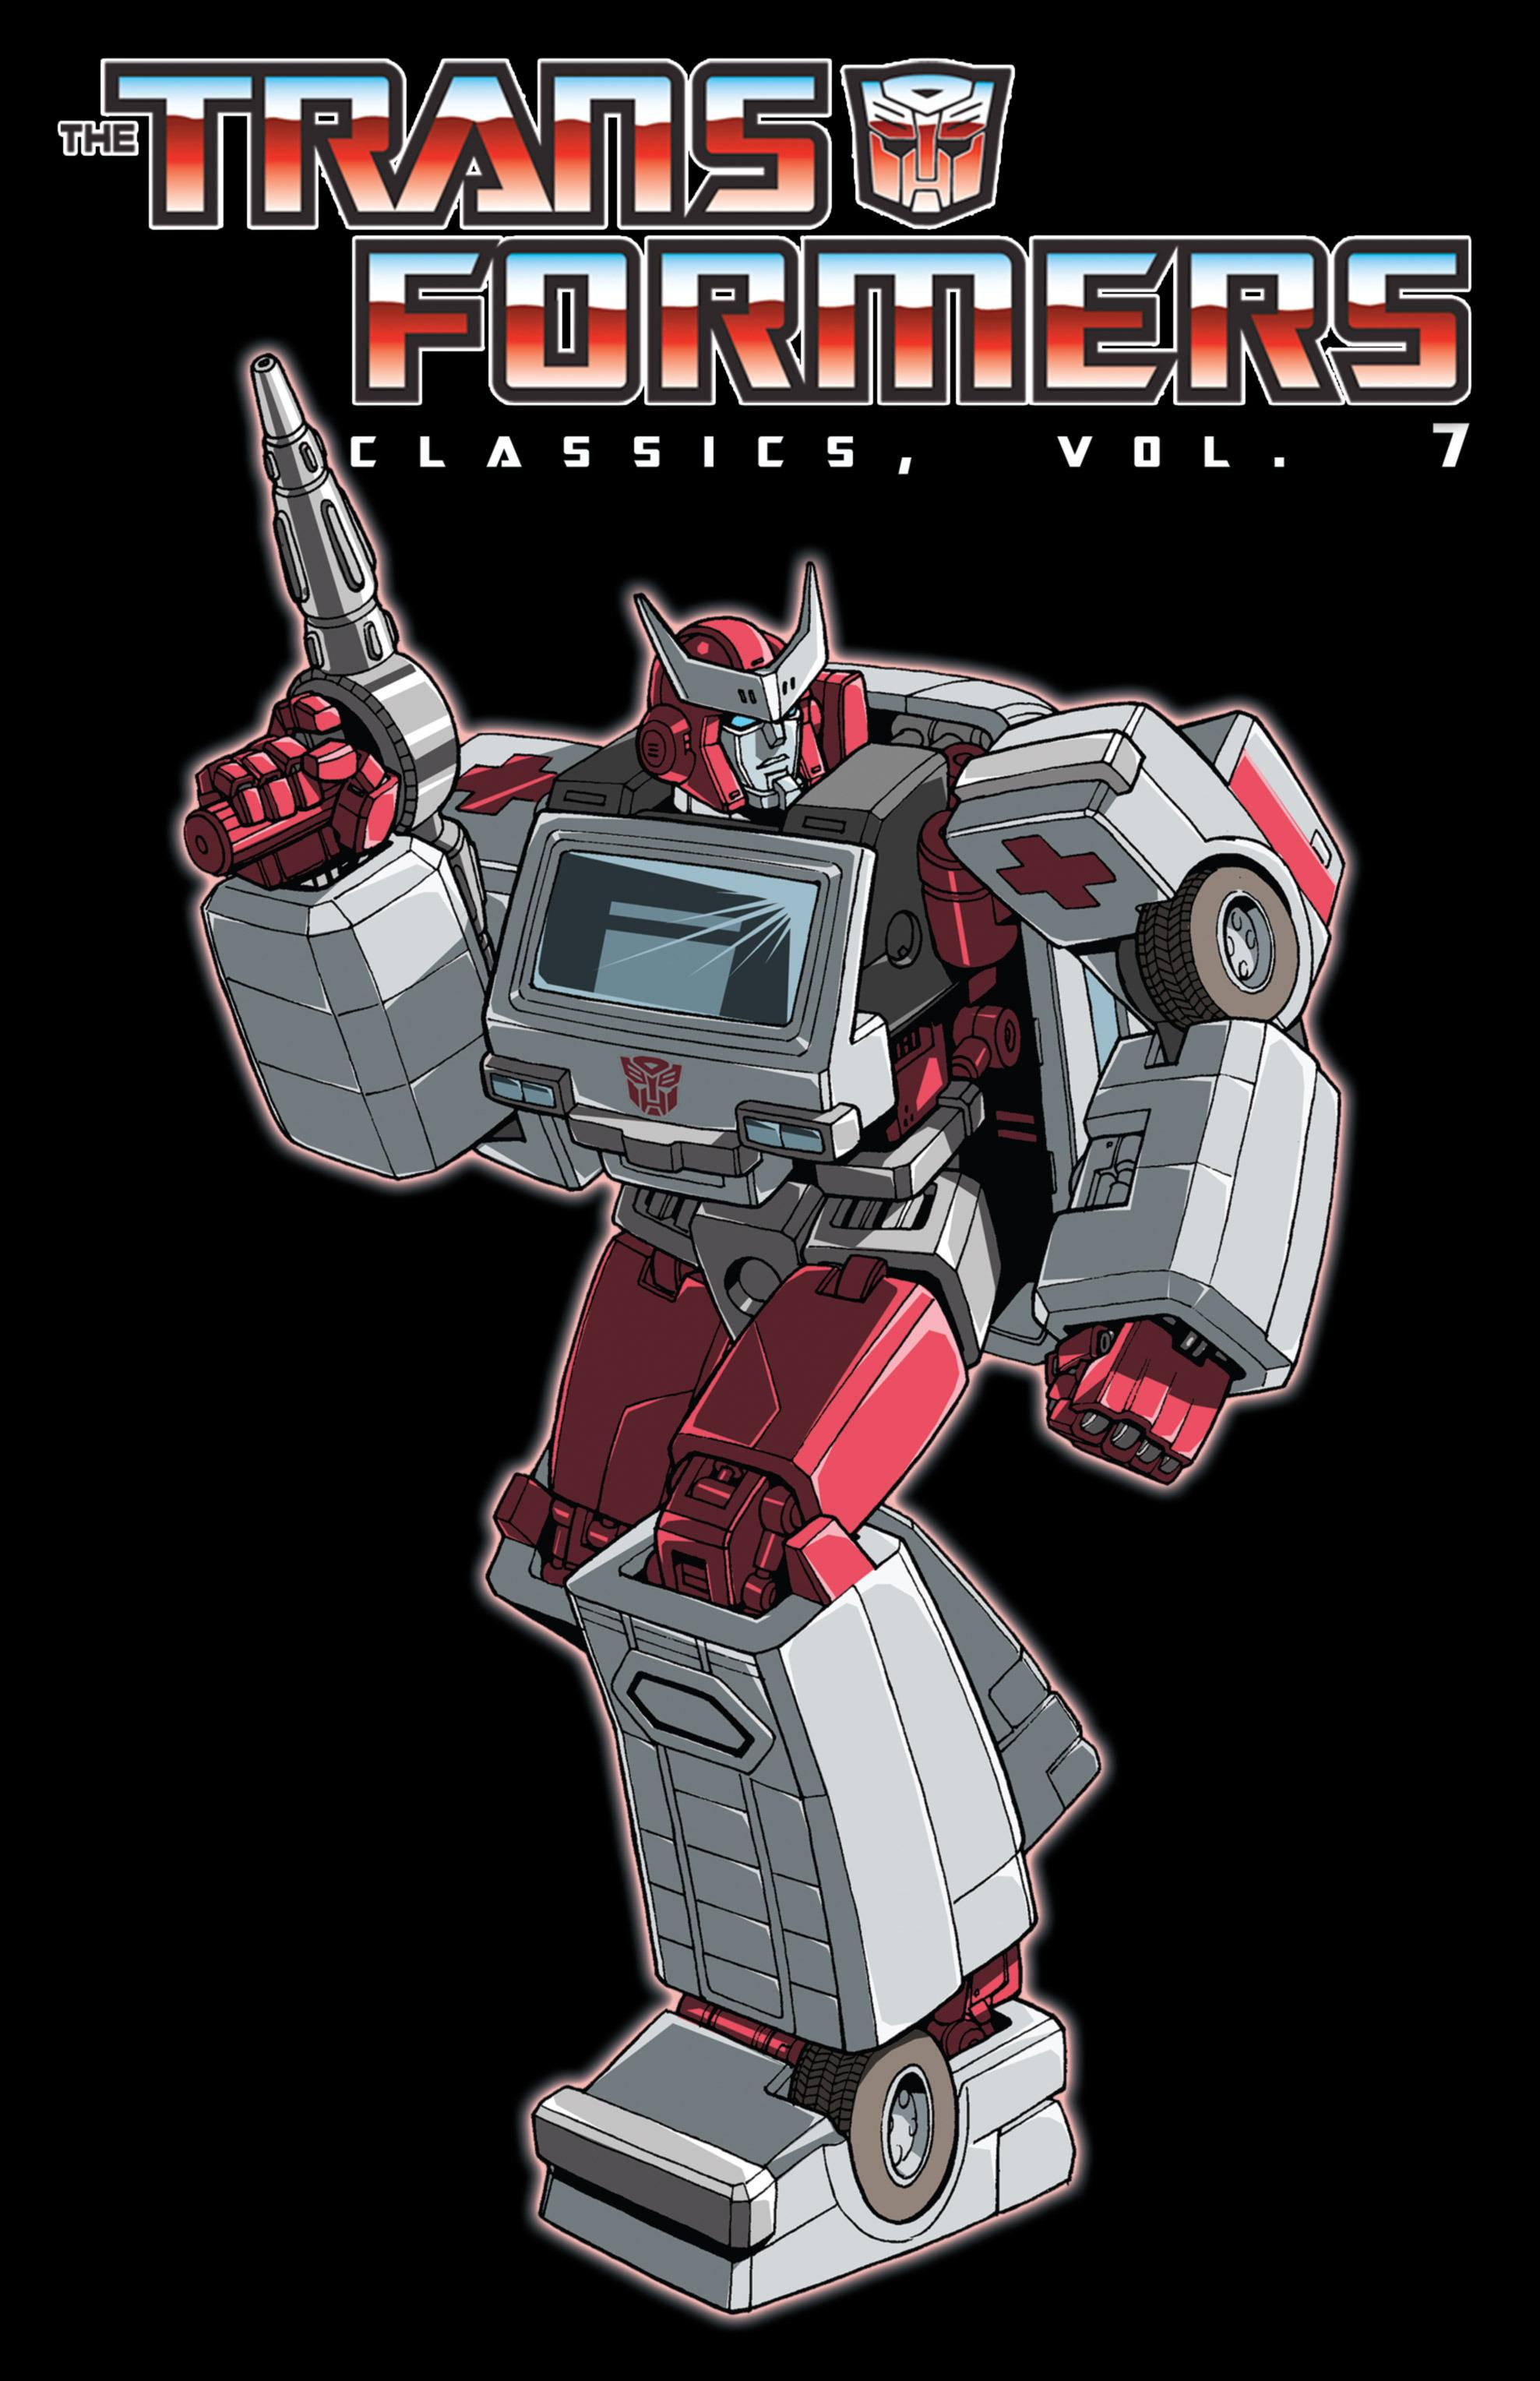 The Transformers - Classics Vol. 7 (2014) download dree